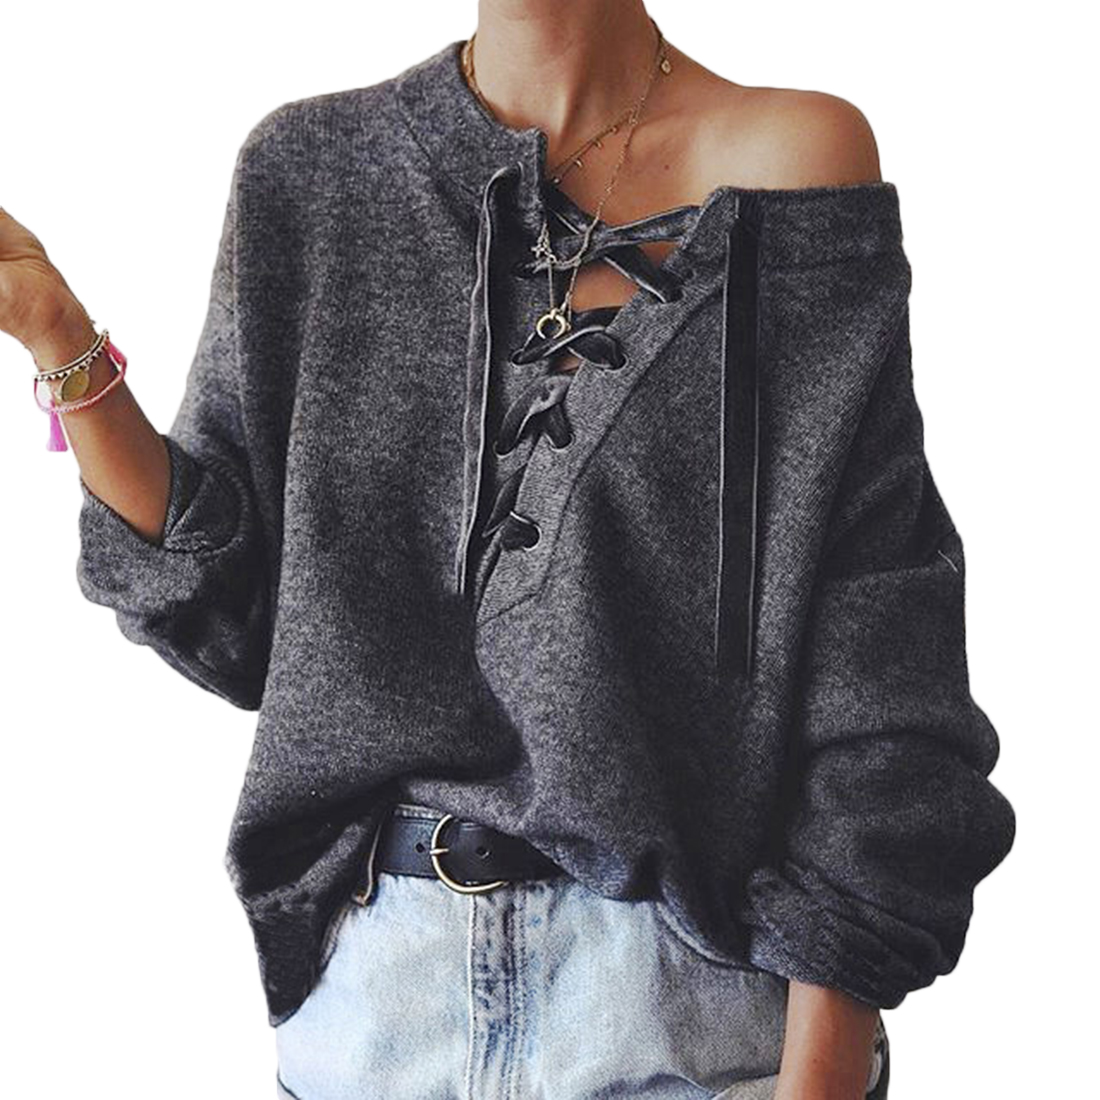 YJSFG HOUSE Hot Winter Warm Sweater Women Lace Up Loose Knitted Coat Long Sleeve Pullover Jumper Outwear Sweater Tops Clothe